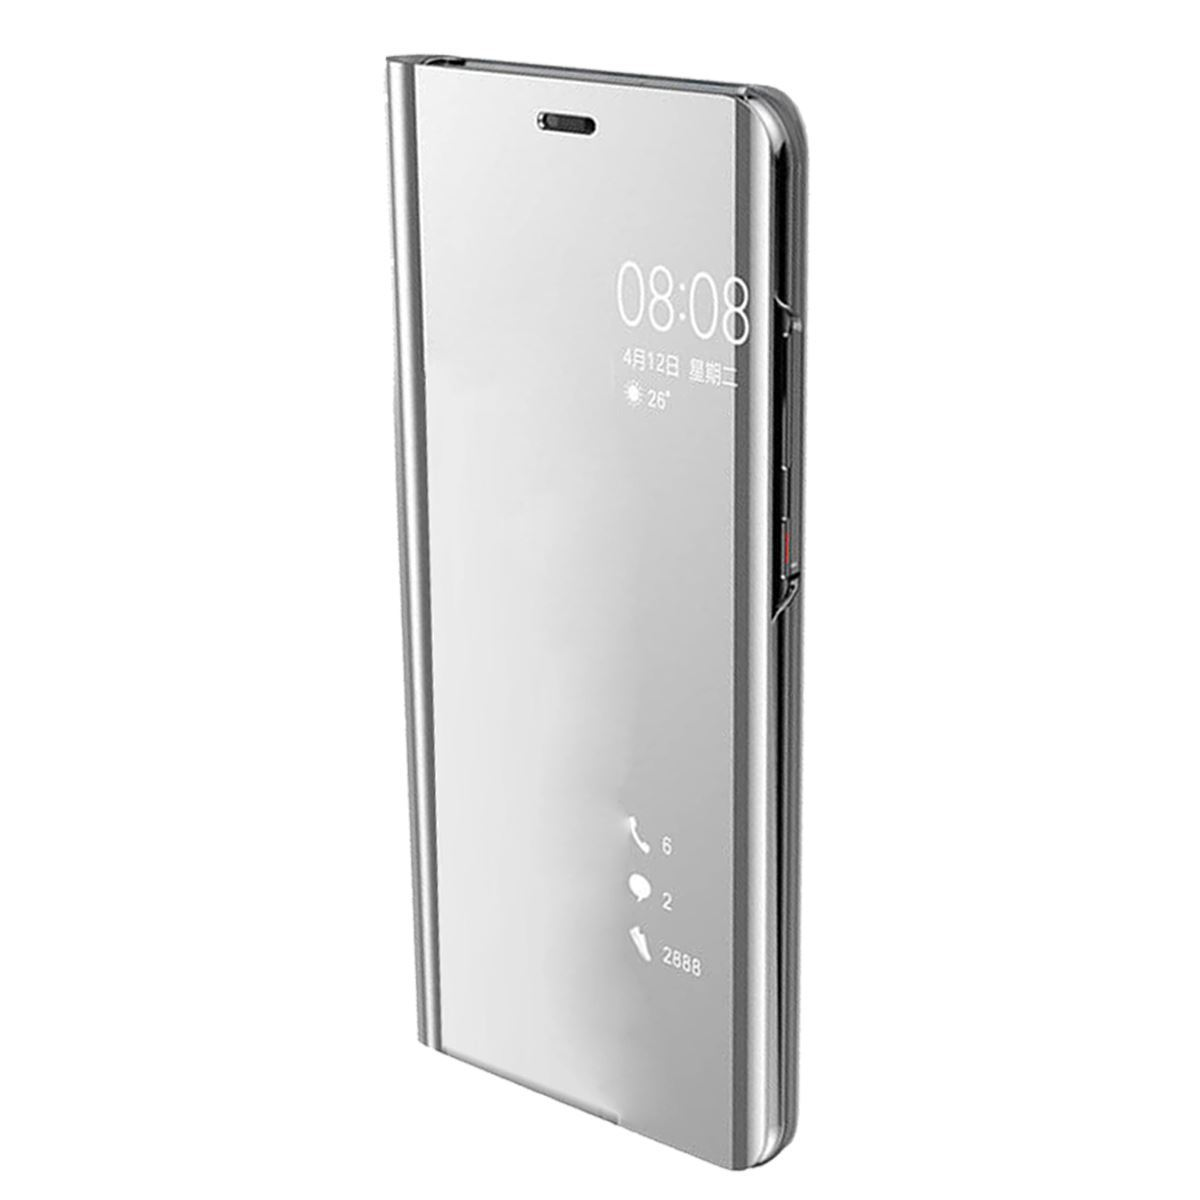 Huawei P Smart Case Smart View Mirror Flip Stand Cover - Silver